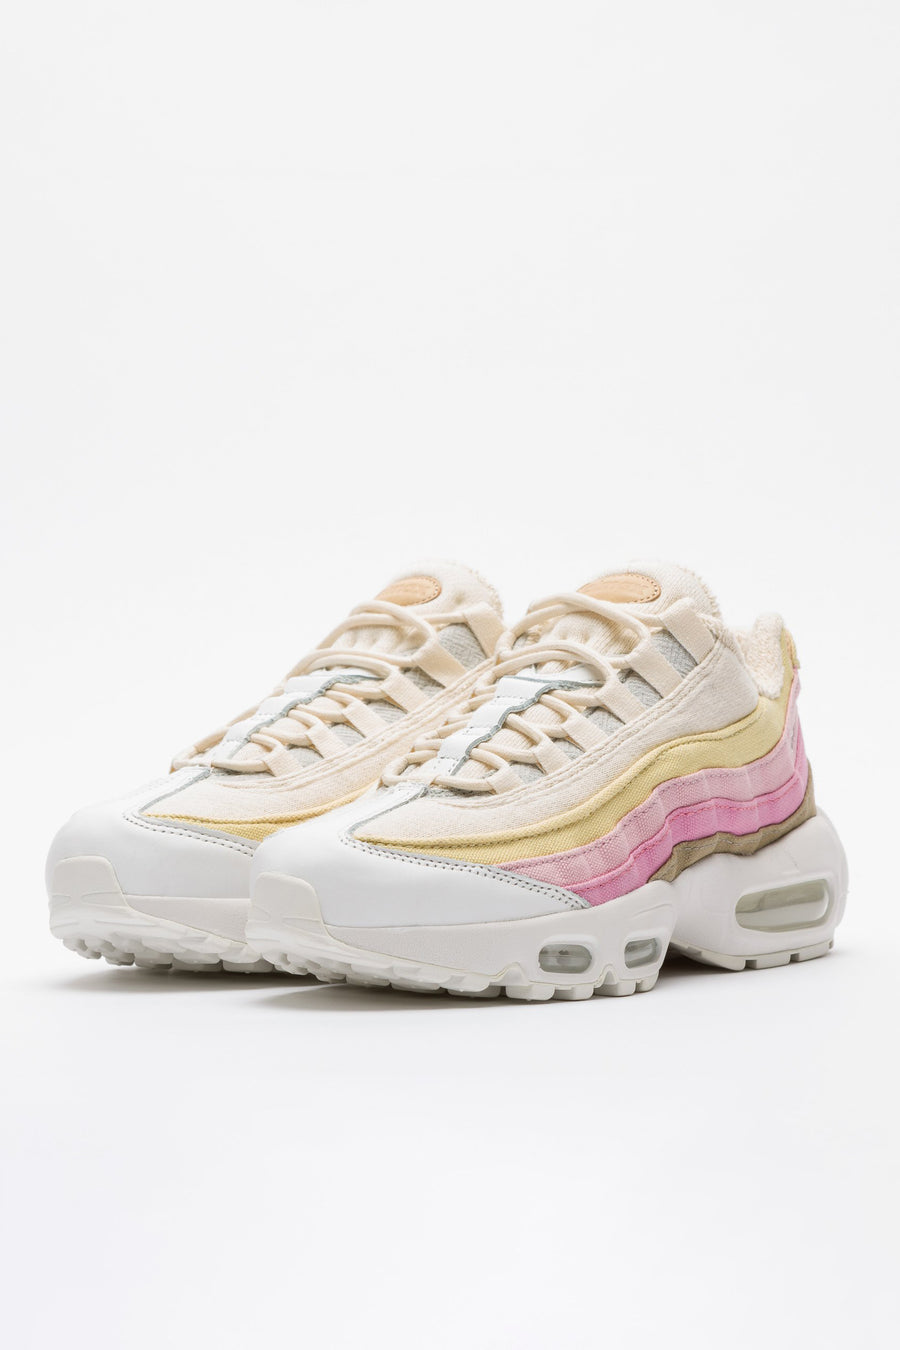 promo code 3220d c3c95 Air Max 95 QS in Natural Dyed Lemon/Plum